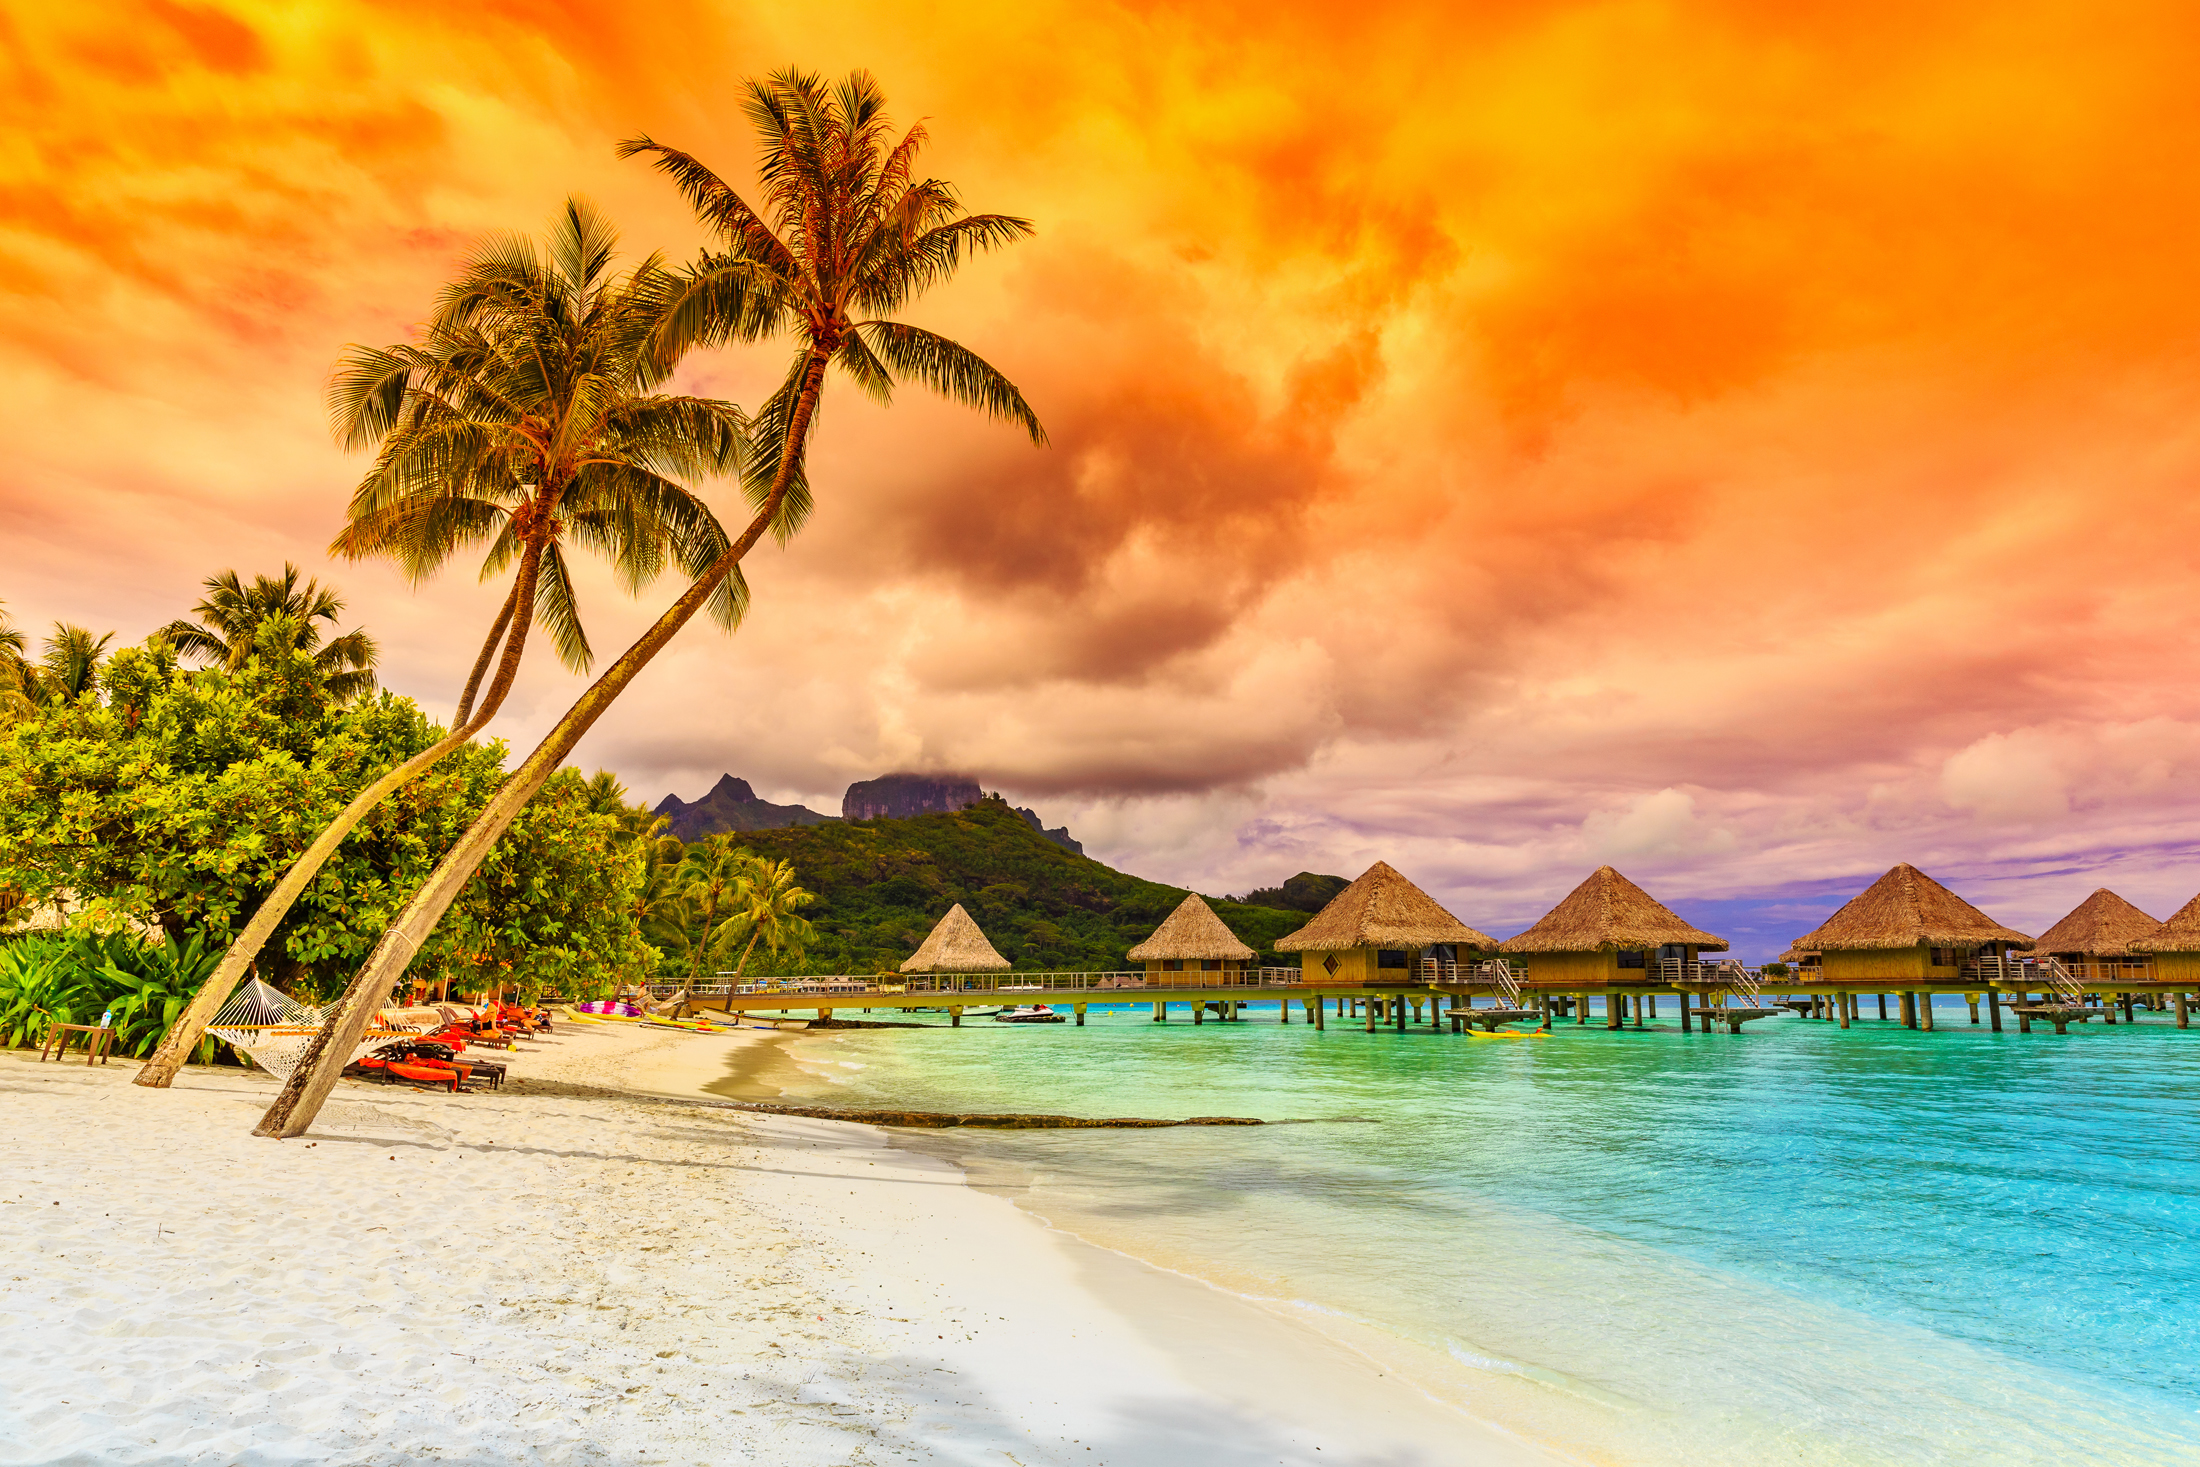 Tropical Islands HD Wallpaper New Tab Theme   World of Travel 2200x1467